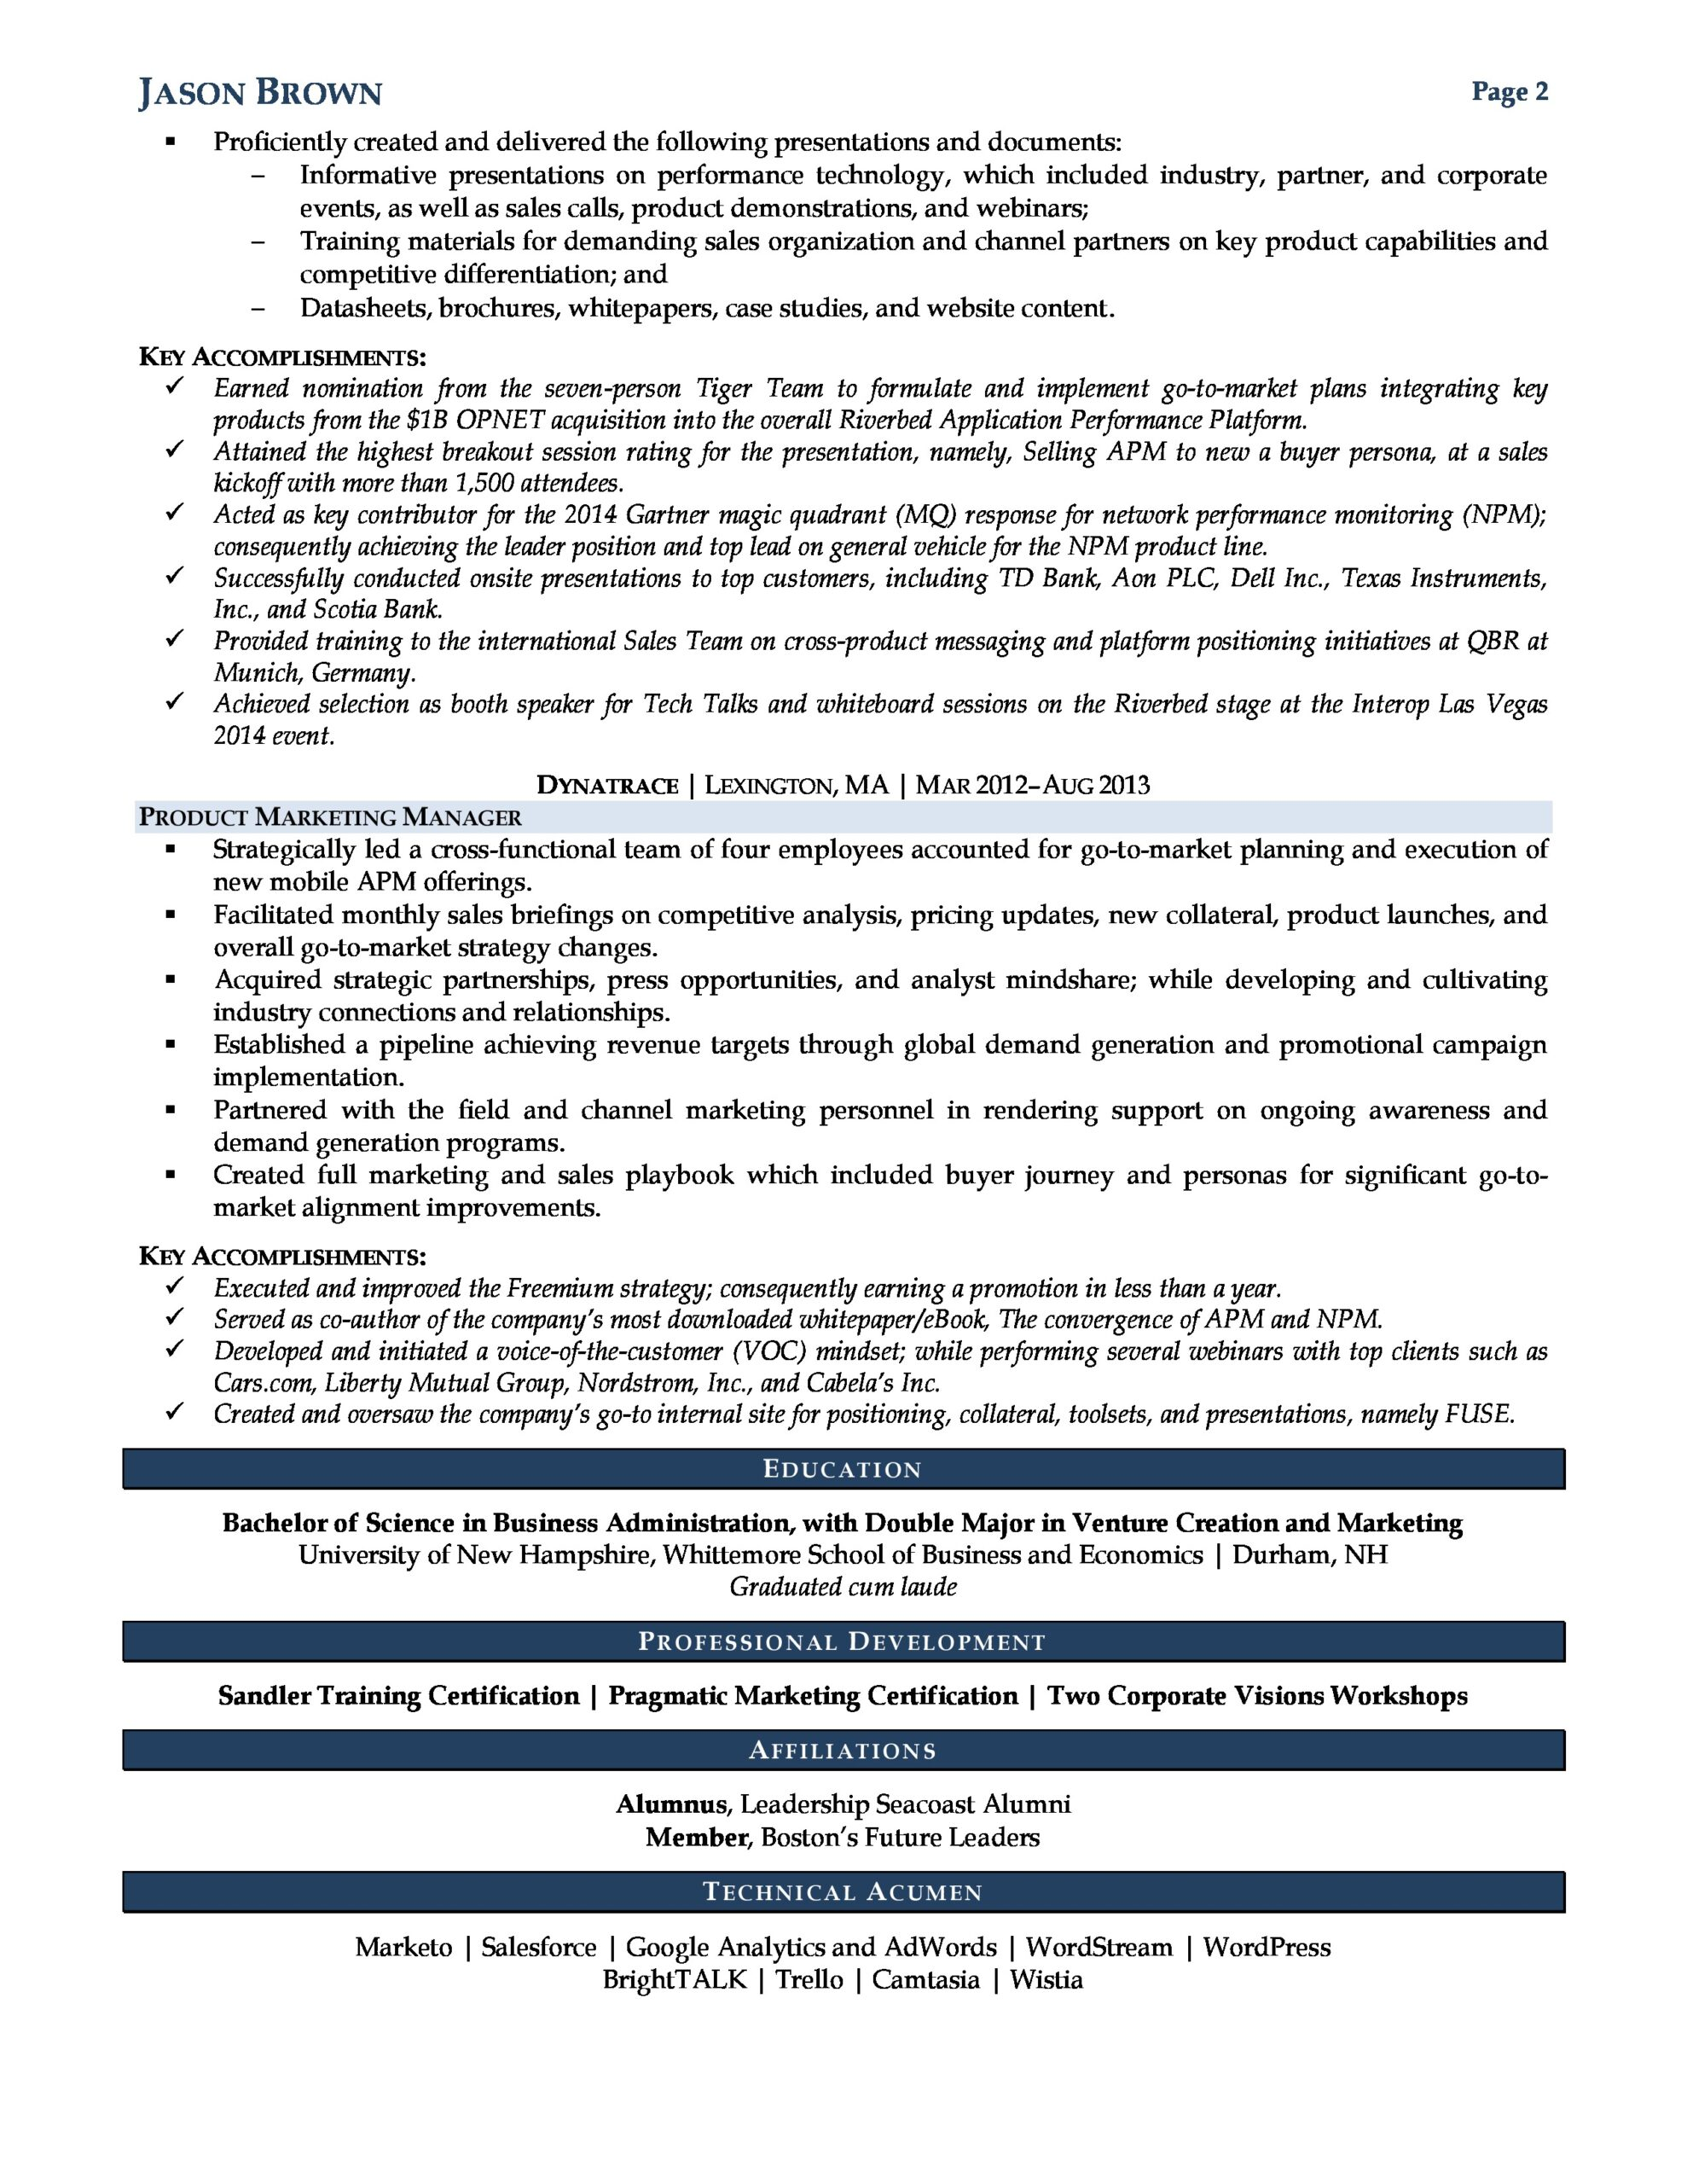 product marketing manager resume professional writers examples for fresh graduate seeking Resume Marketing Manager Resume